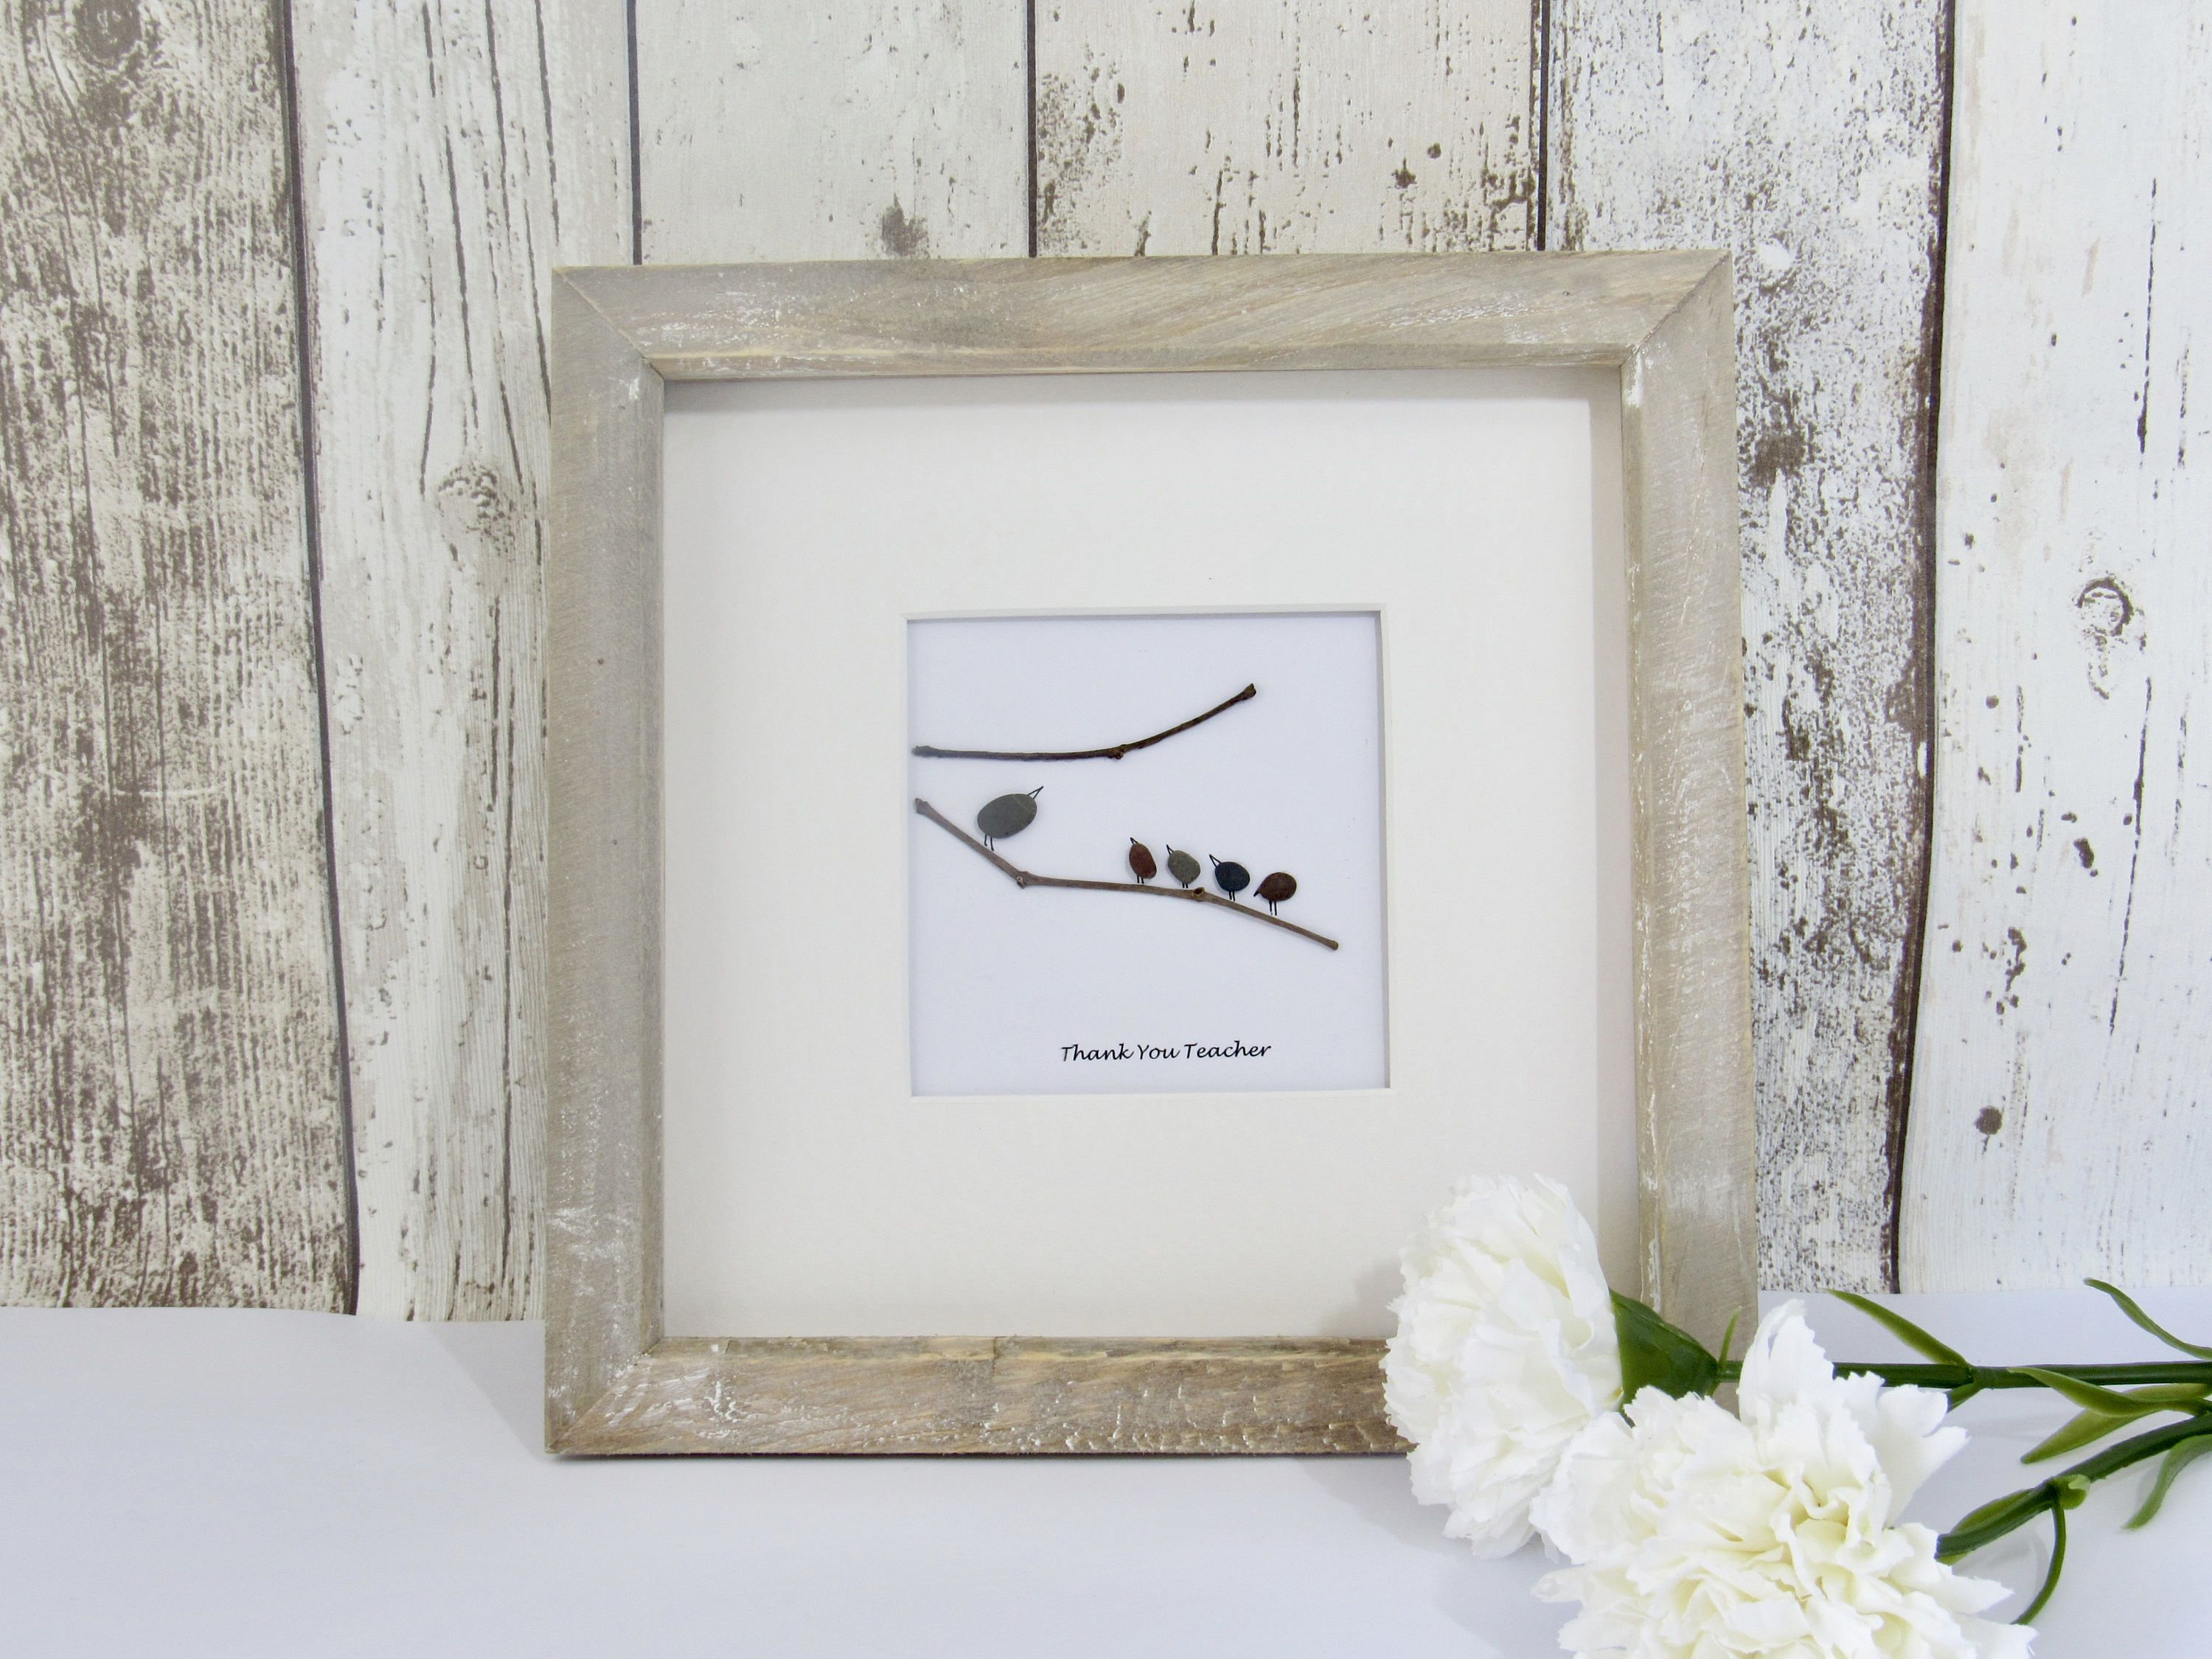 Home interiors and gifts framed art - Pebble Art Home Decor Pebble Pictures Wall Art Birds Congratulations Thank You Gift Gift For Her Teacher Gift Childminder Gift